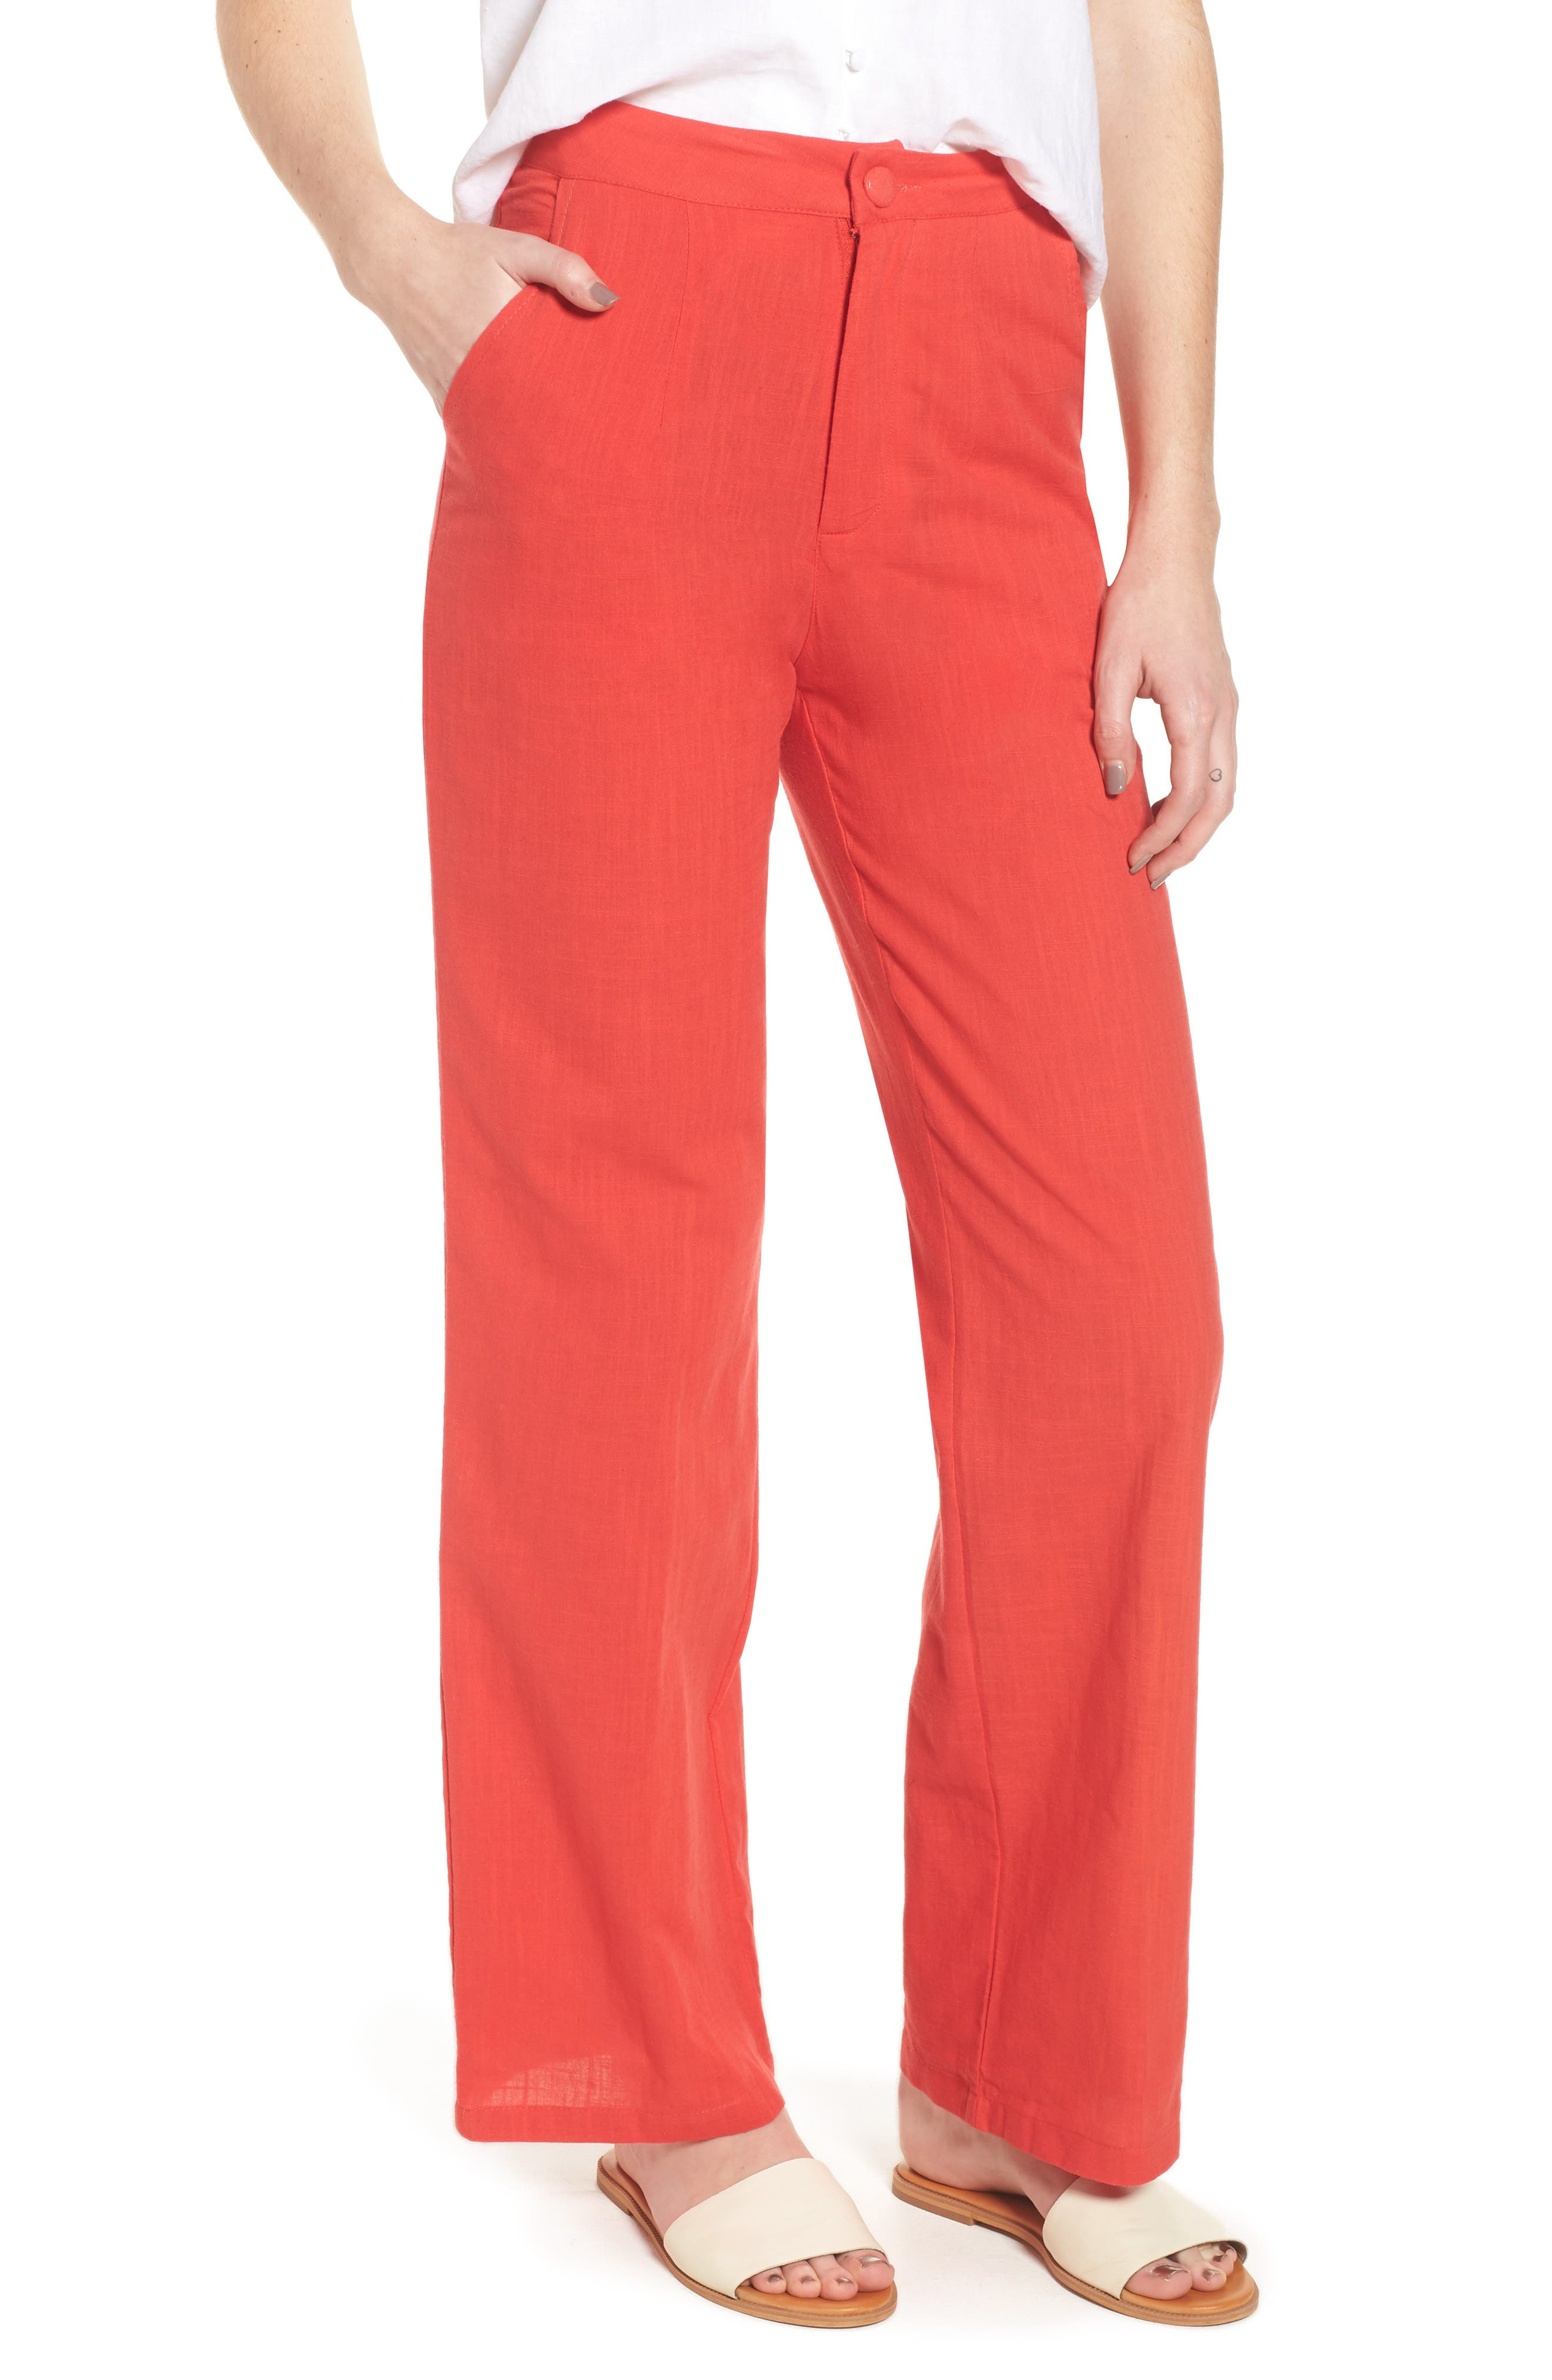 Femme Fatale High Waist Pants,                         Main,                         color,